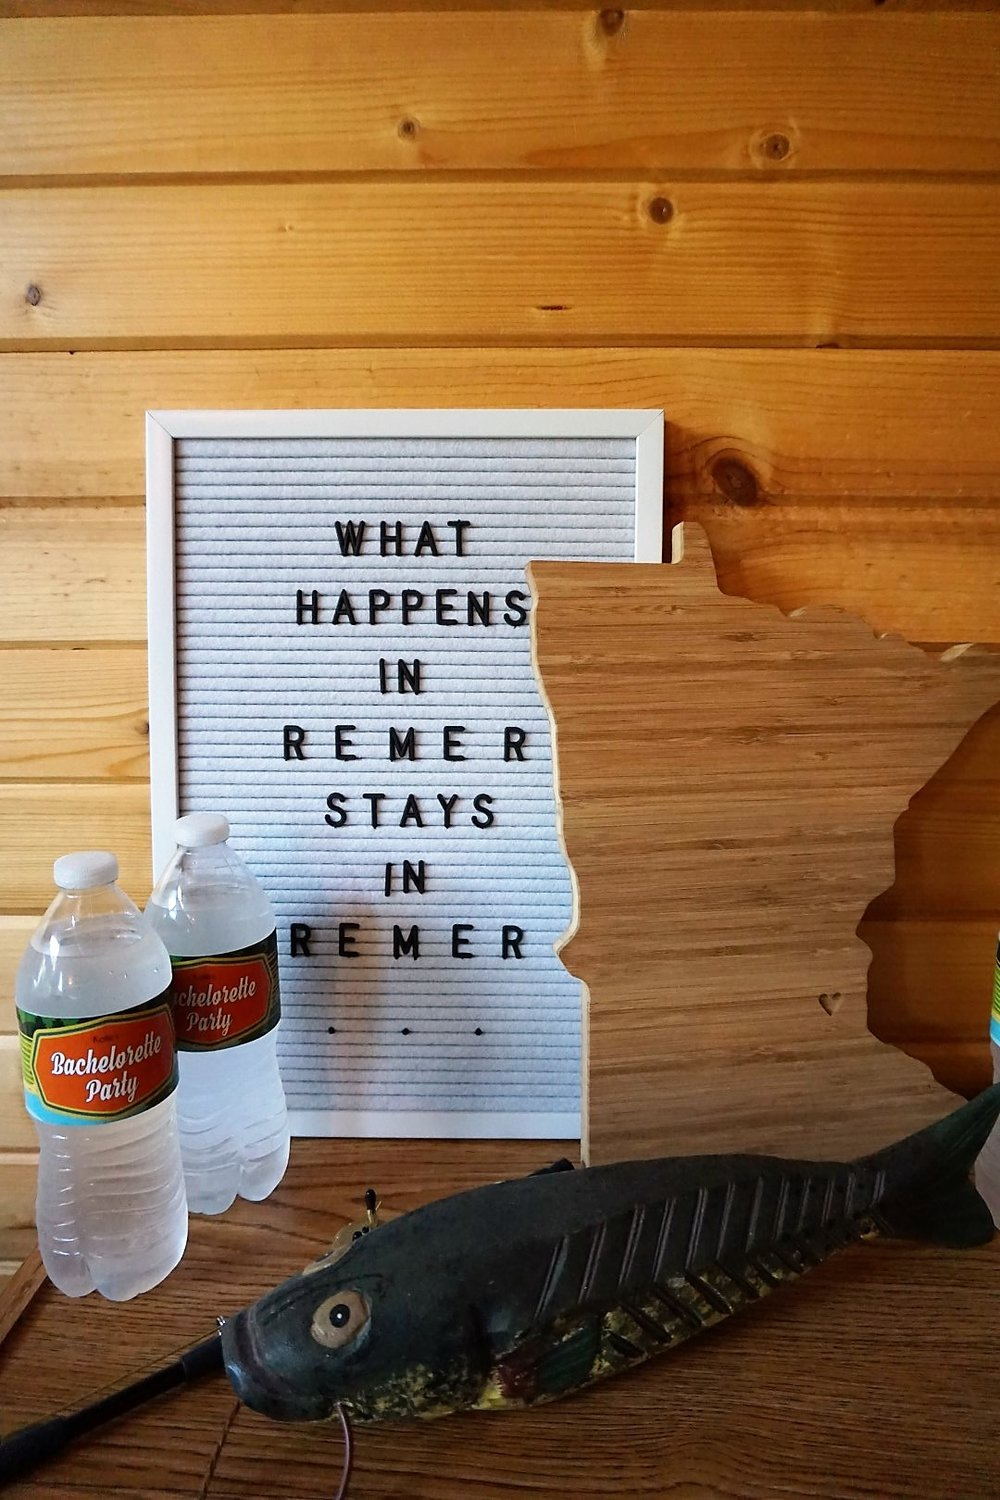 Letterboard, Minnesota wood cutout, and fish decor are perfect for a cabin or lake themed bachelorette party.